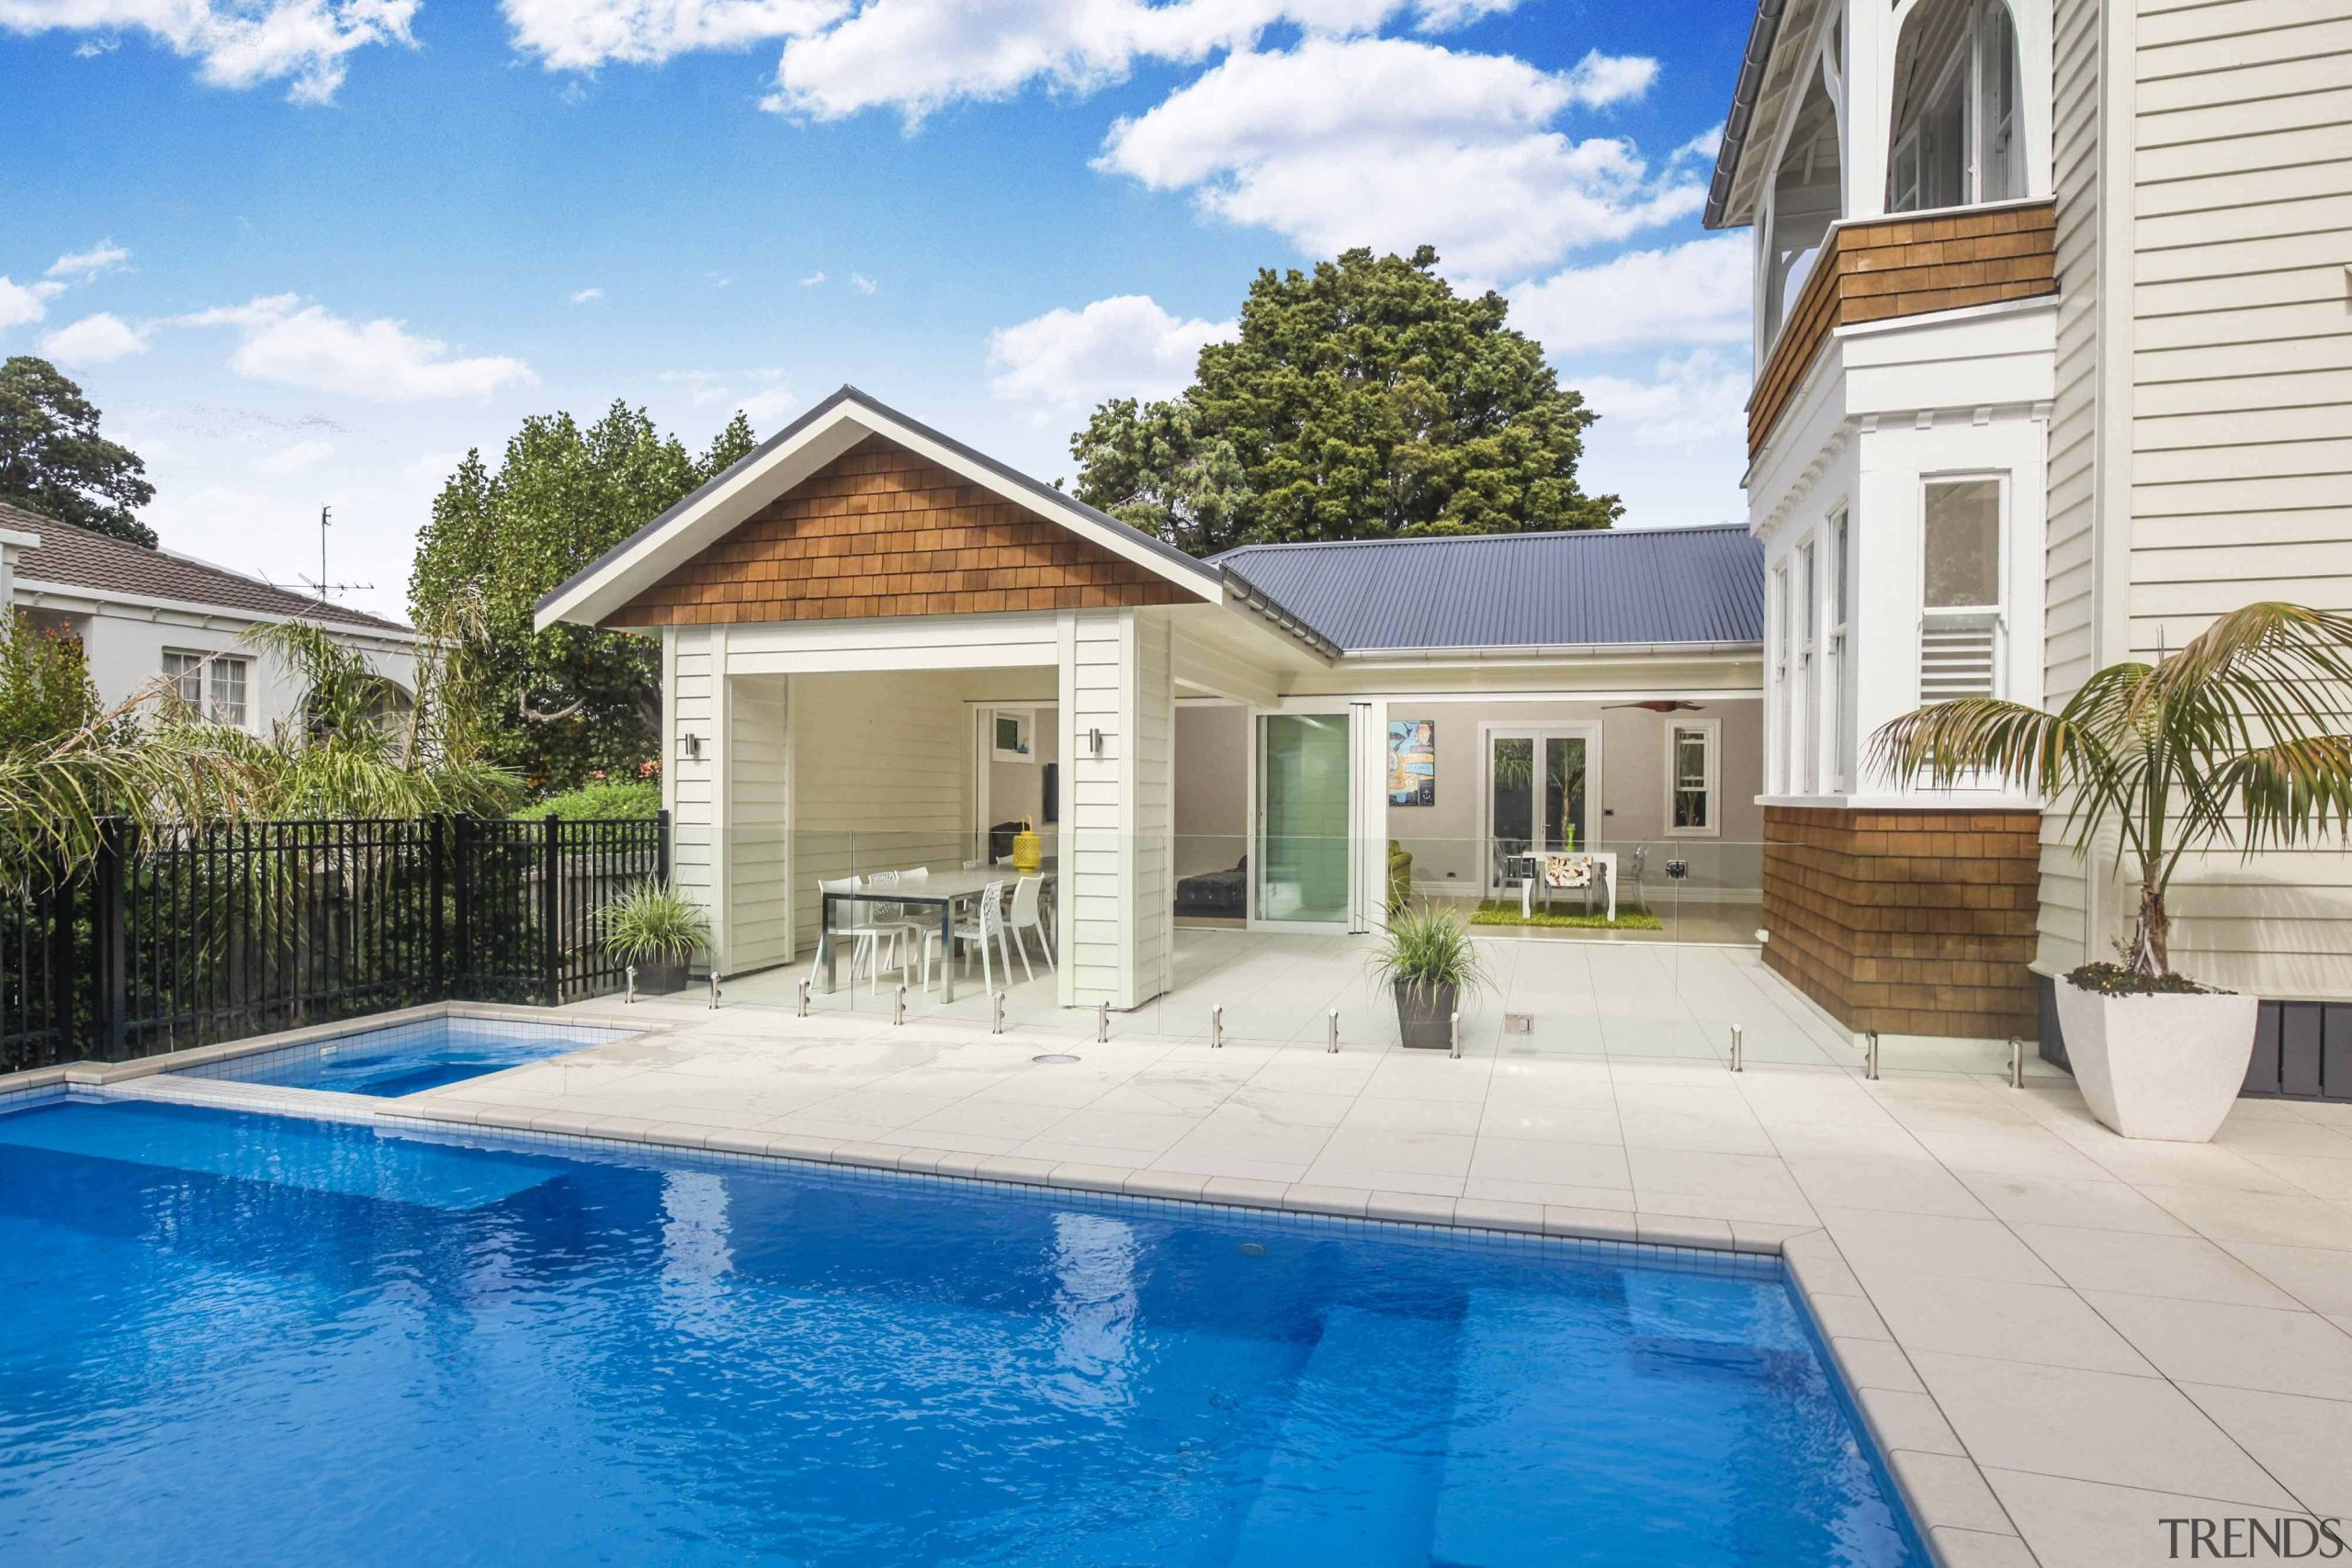 The swimming pool features a connected spa pool backyard, cottage, estate, facade, home, house, property, real estate, residential area, swimming pool, villa, white